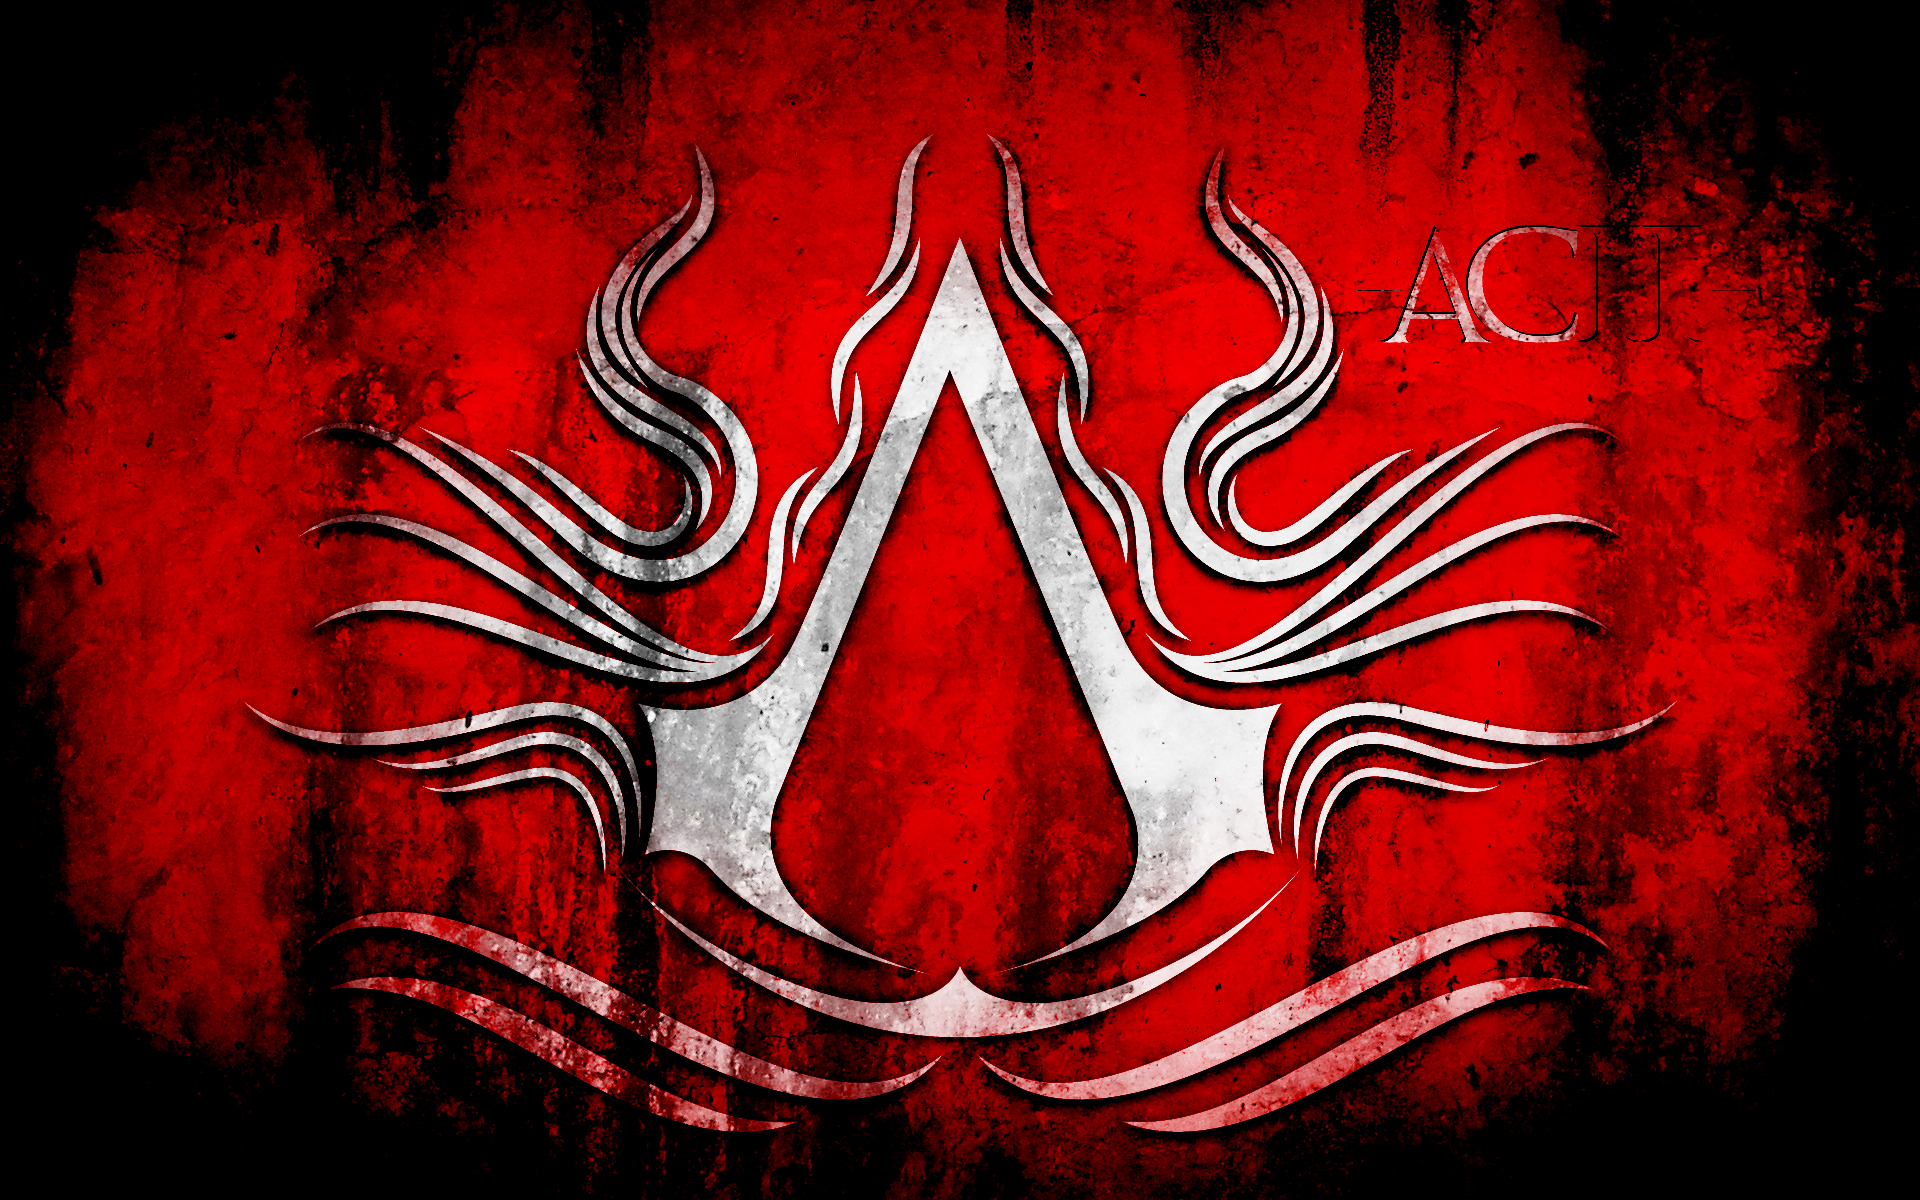 Assassins creed logo wallpaper hdpuzzles assassins creed symbol red 1920x1200